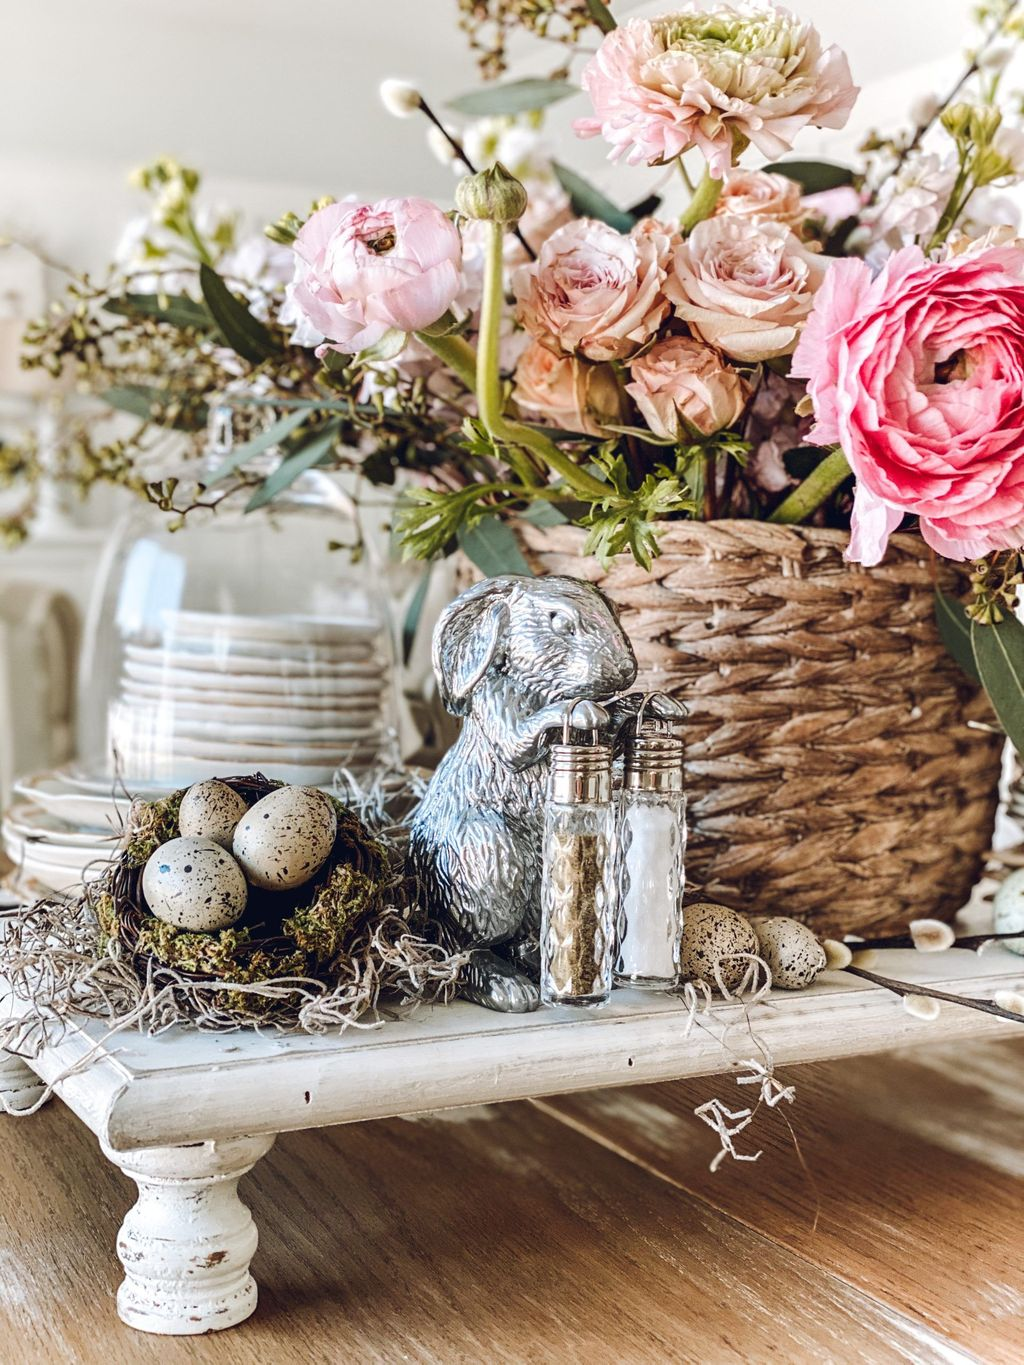 Inspiring Spring Table Centerpieces Best For Dining Room 21